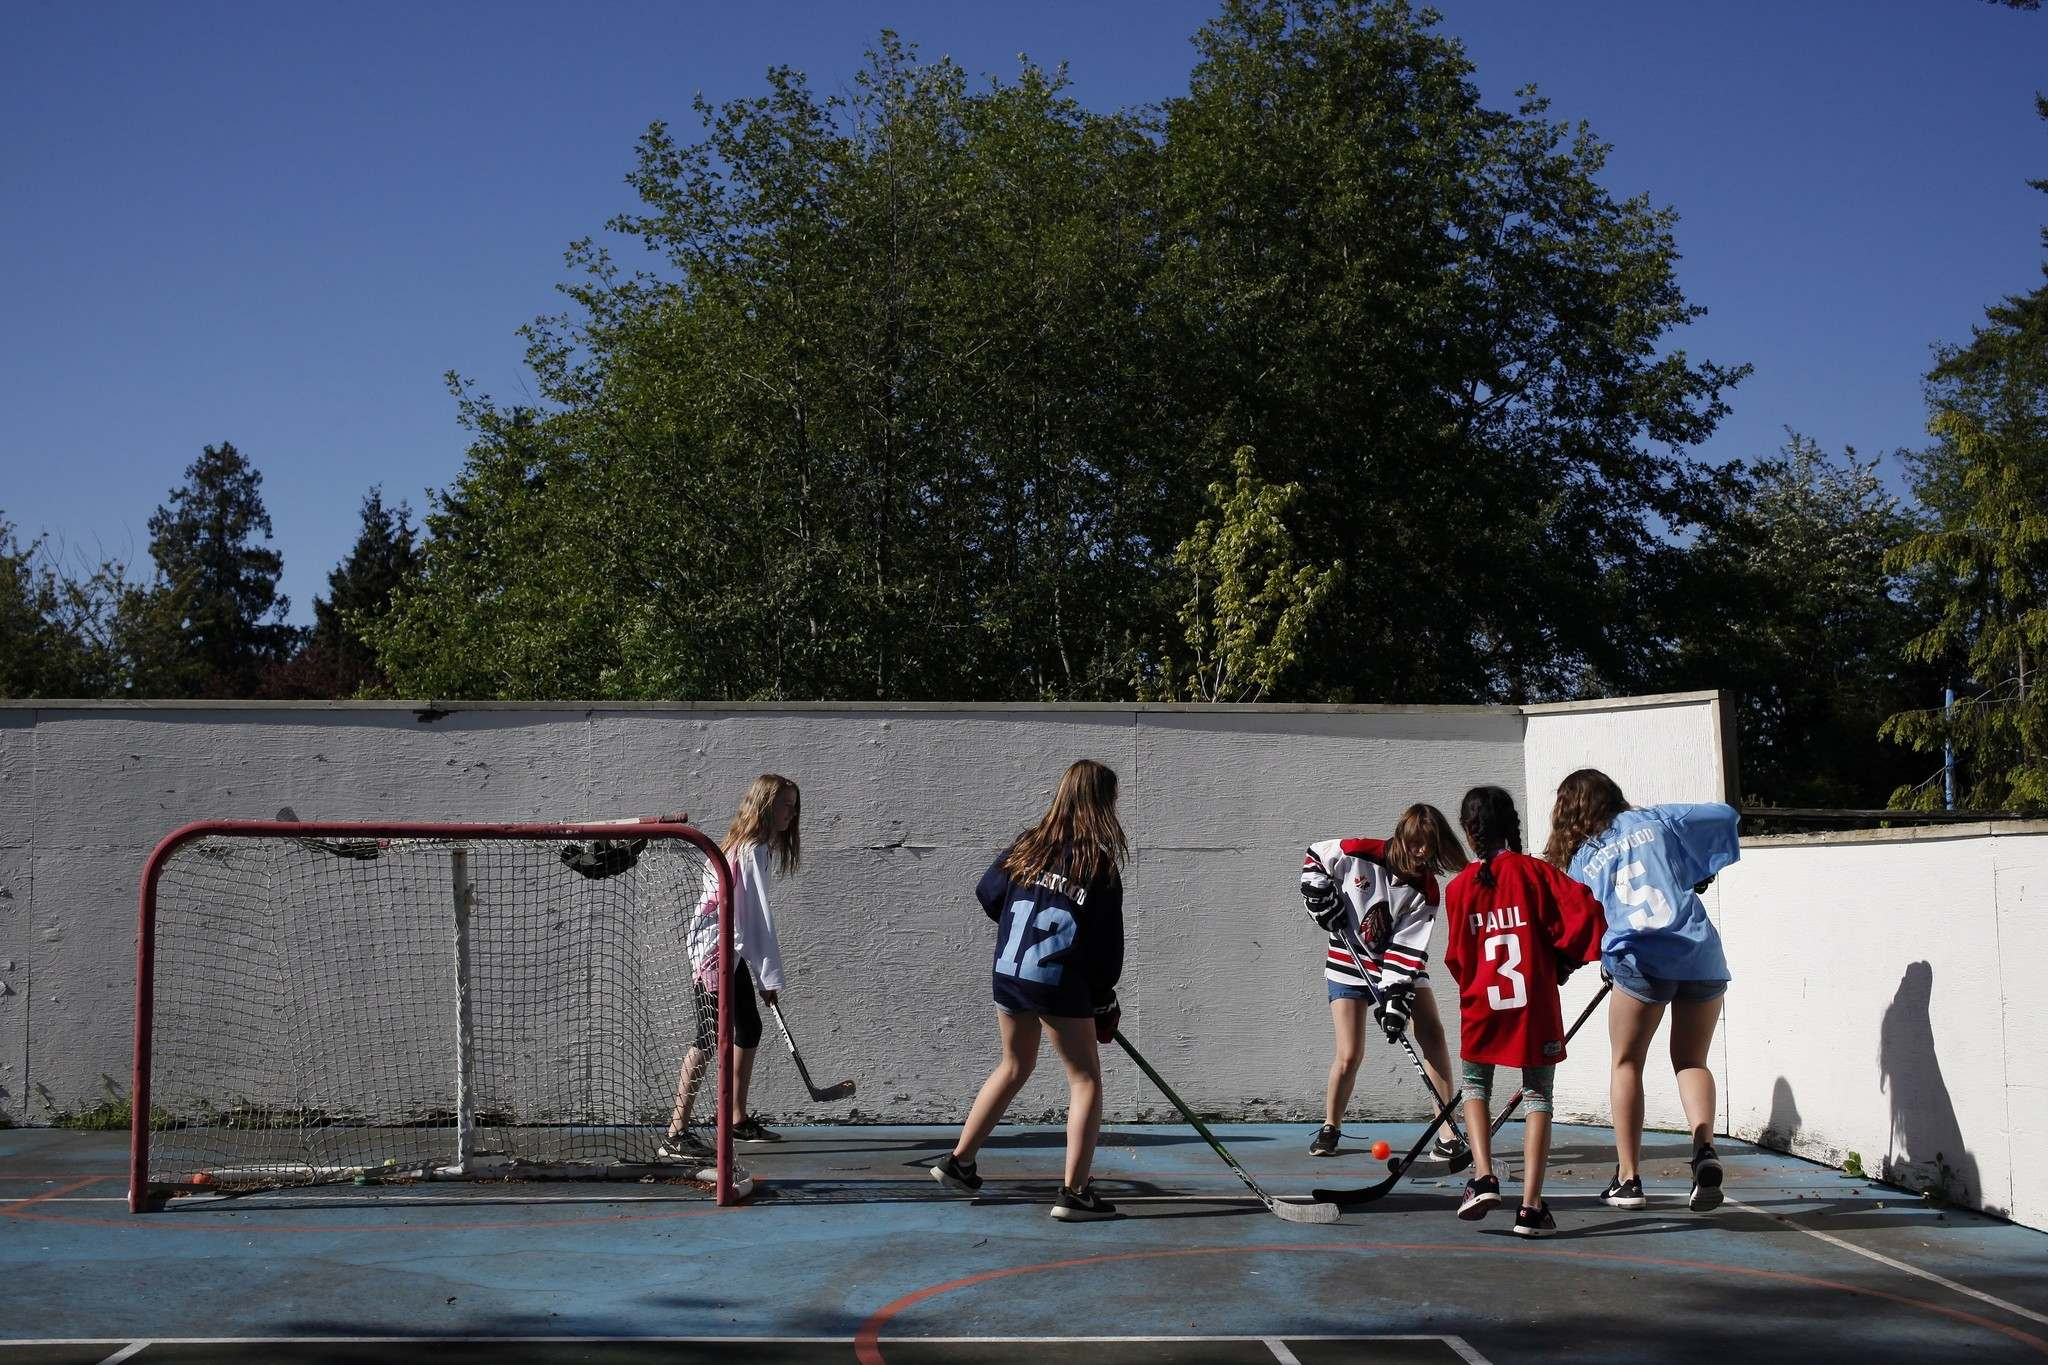 Most children make do with community facilities that have no bells and whistles. An elite few have parents who can spend tens of thousands of dollars on rinks, soccer pitches and putting greens.